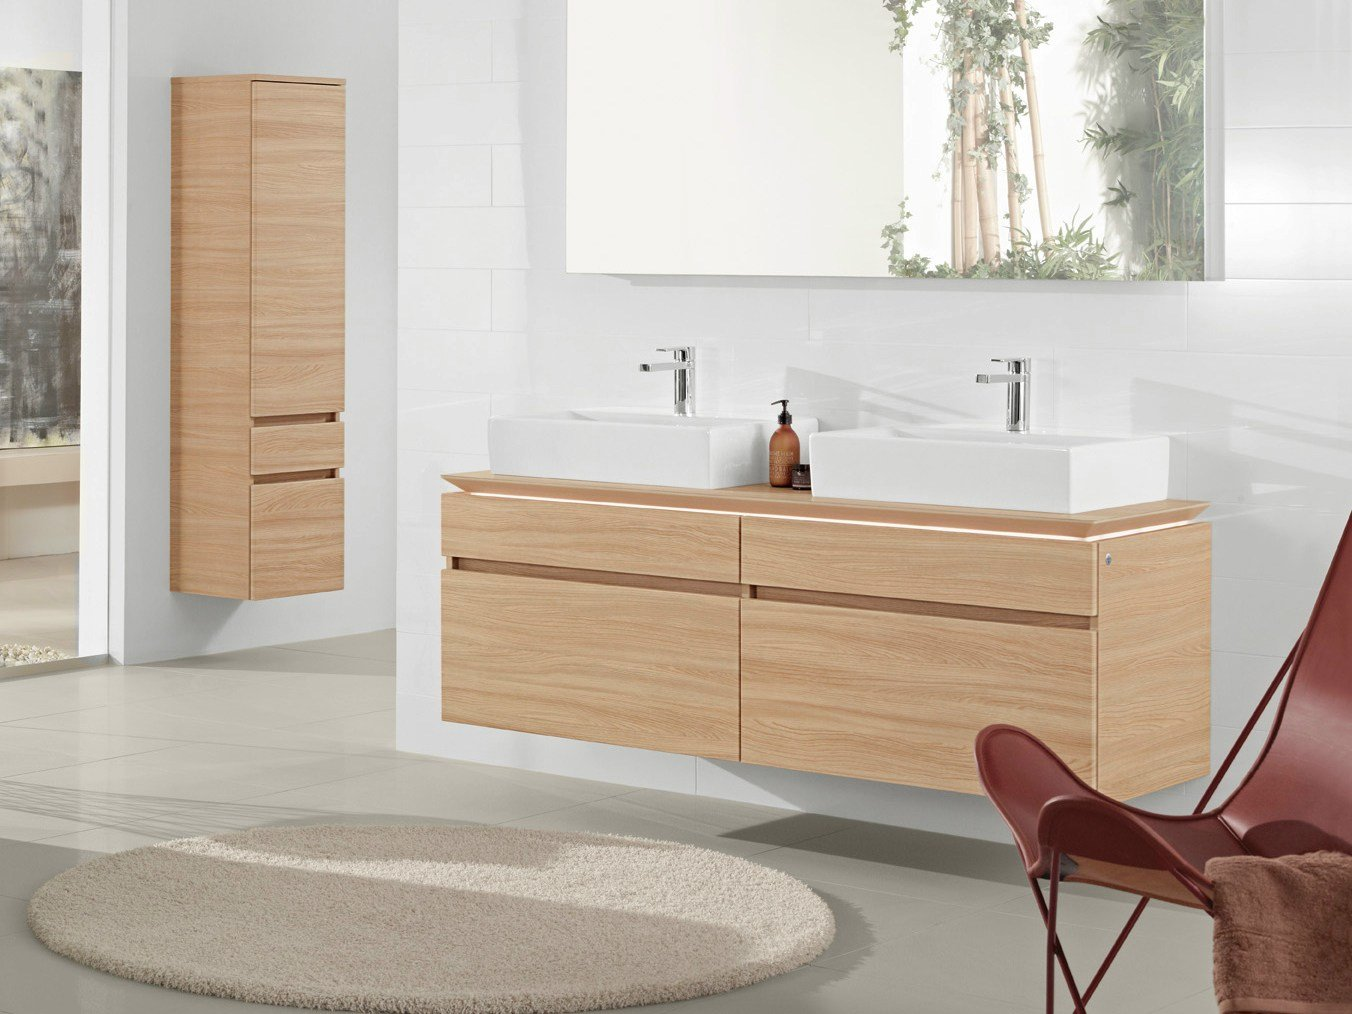 villeroy boch bathroom archiproducts - Villeroy And Boch Bathroom Cabinets